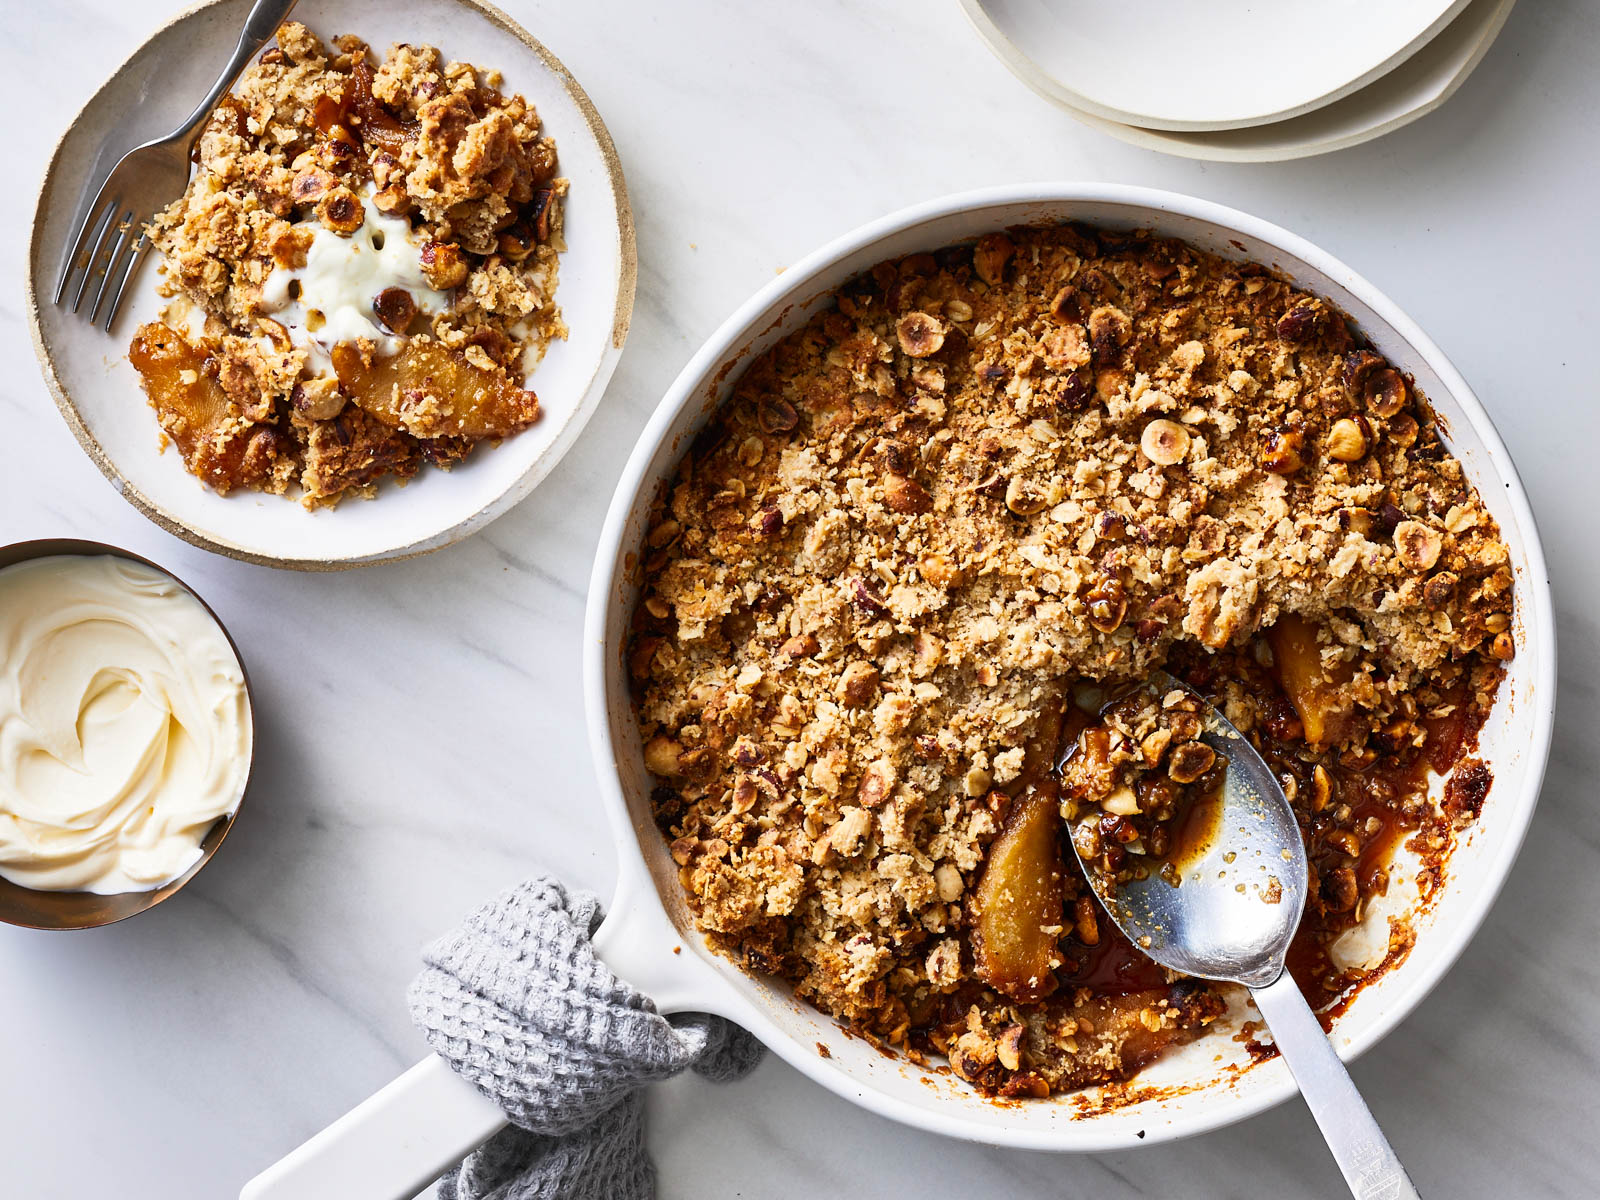 Brandied Apple Crisp with Hazelnuts